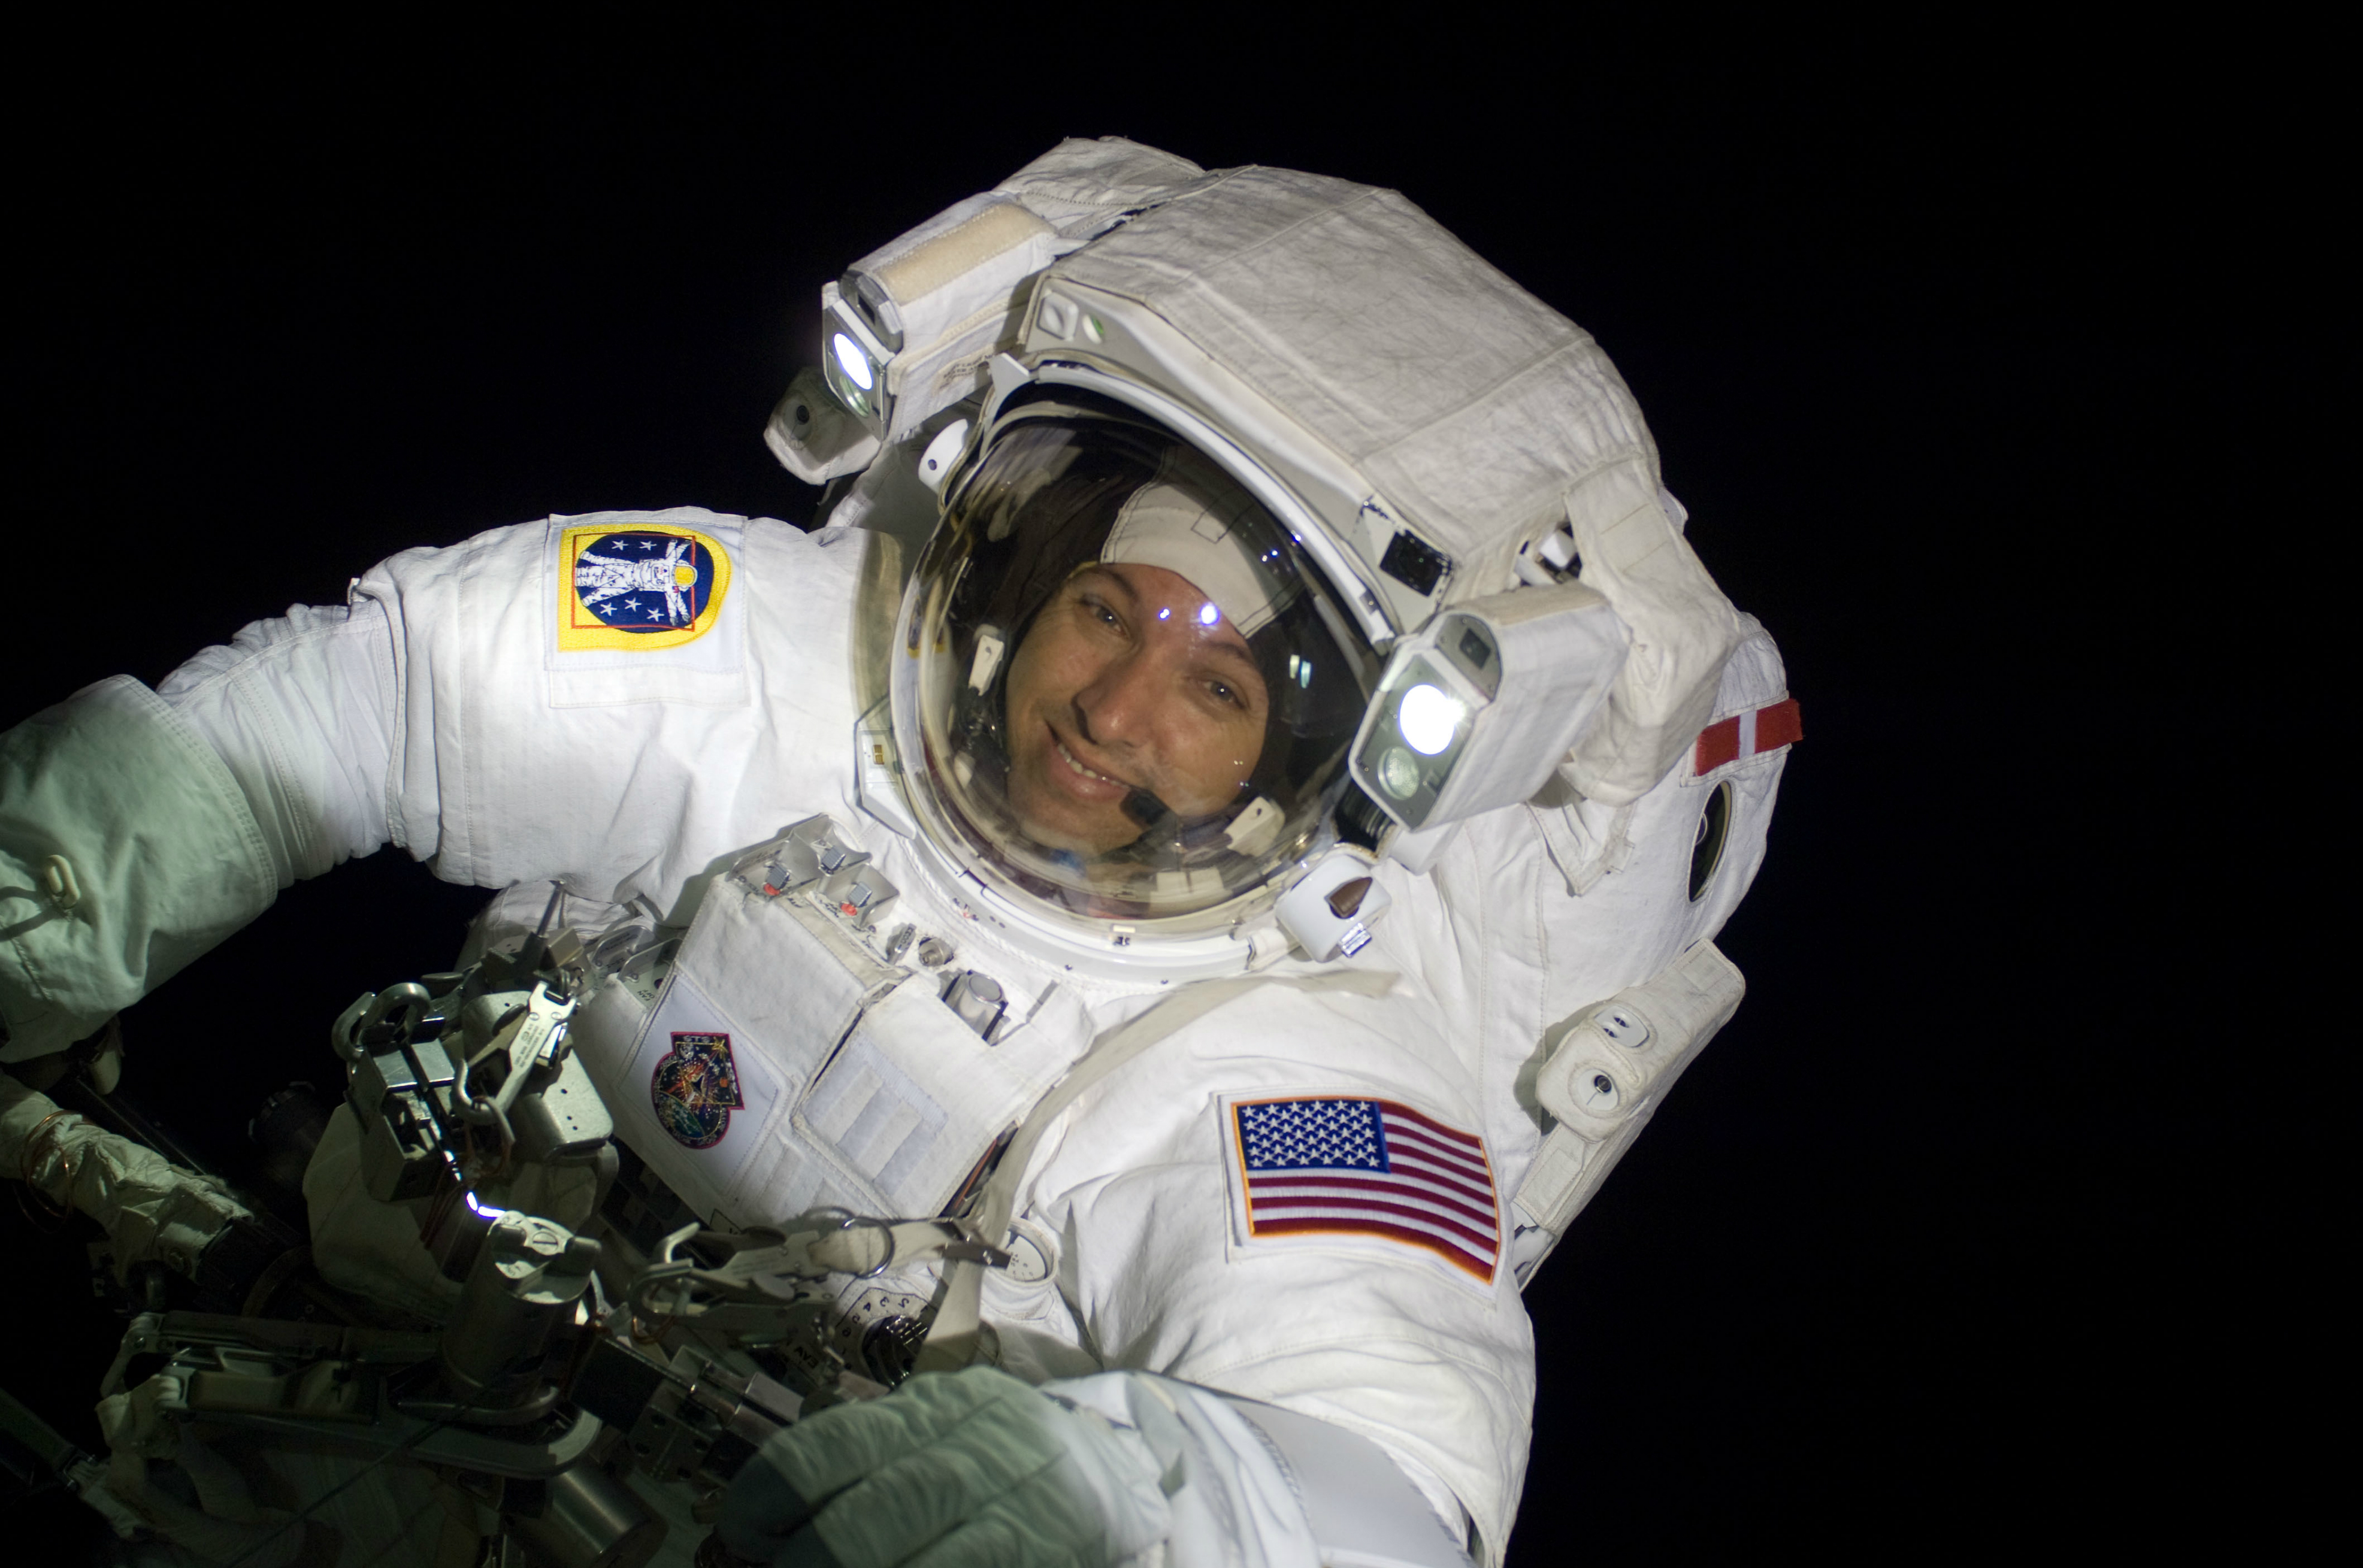 astronaut from nasa - photo #4